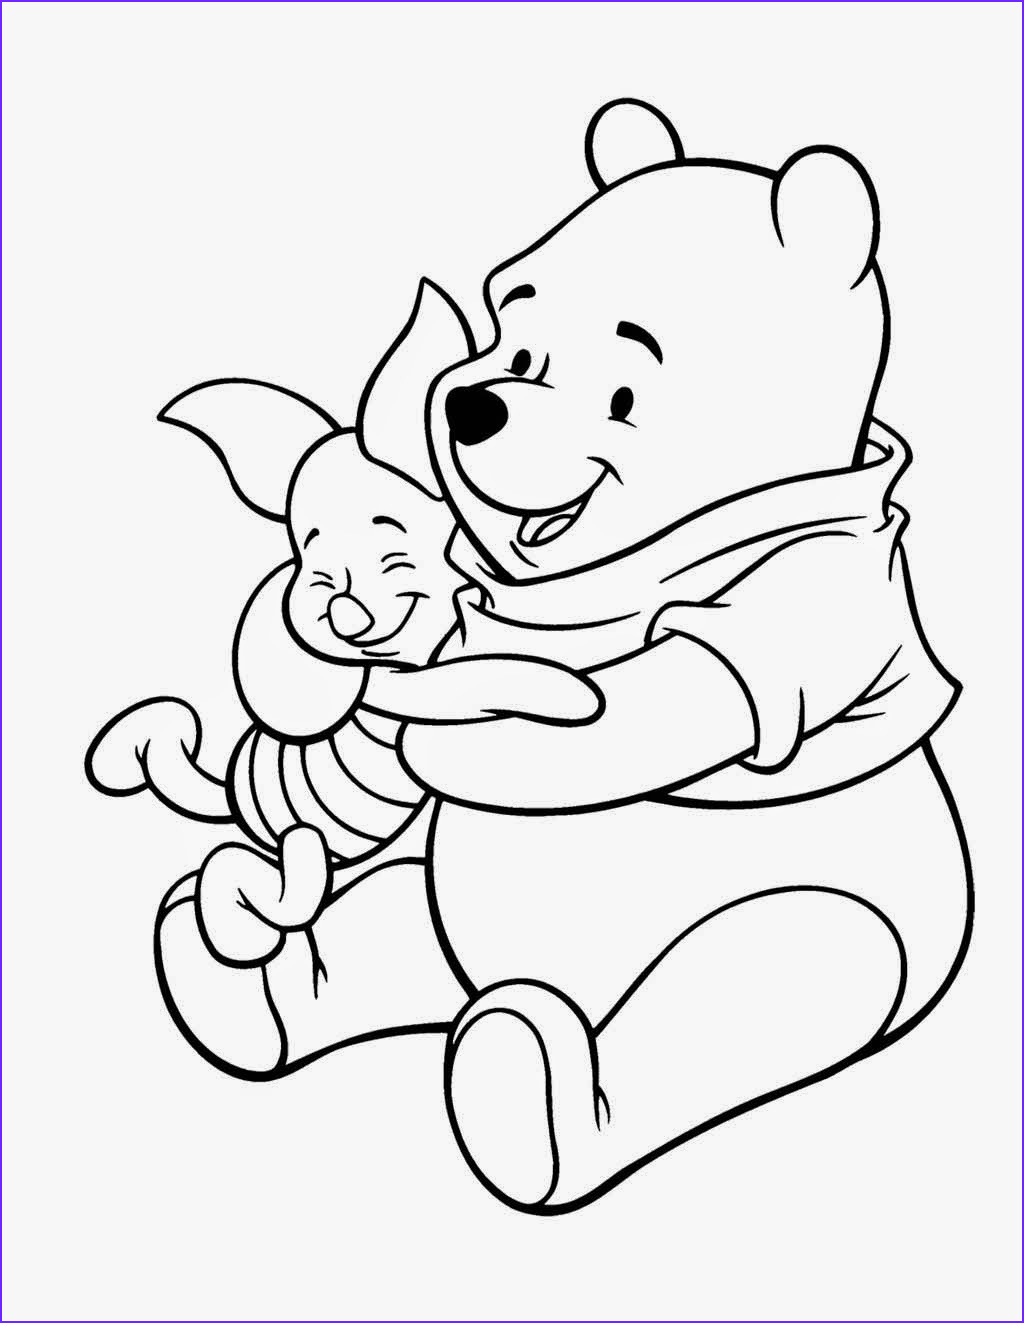 Winnie the Pooh Coloring Book Beautiful Stock Winnie the Pooh Coloring Pages for Kids